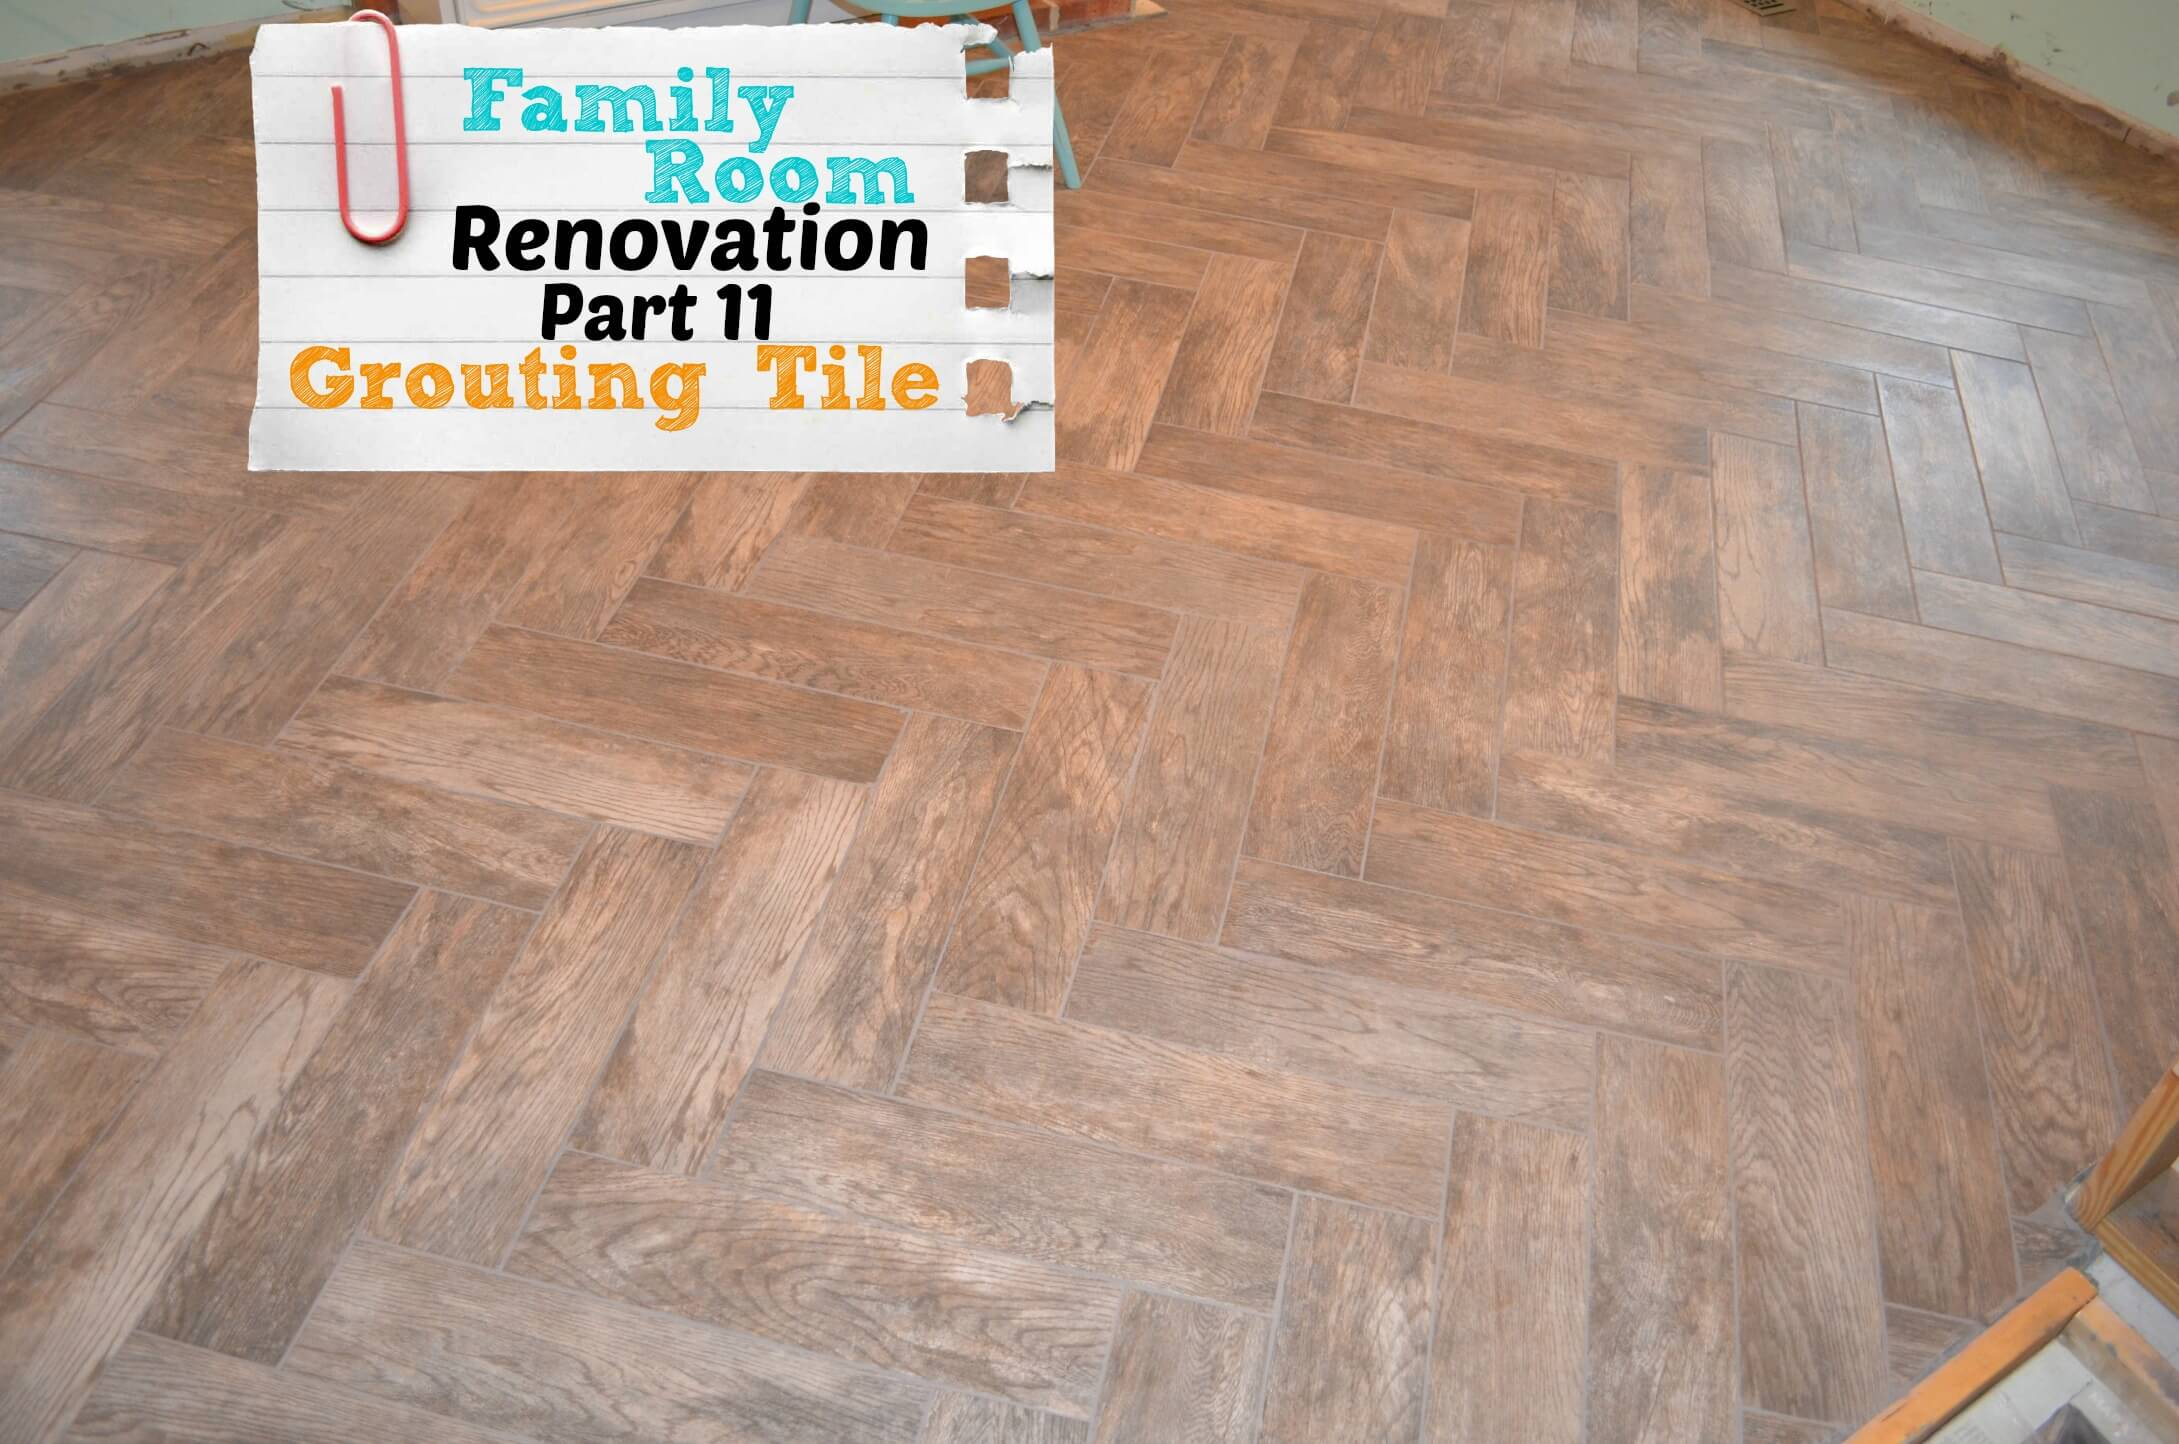 Grout Tile Floor painting grout Family Room Renovation Part 11 Grouting Tile Floor